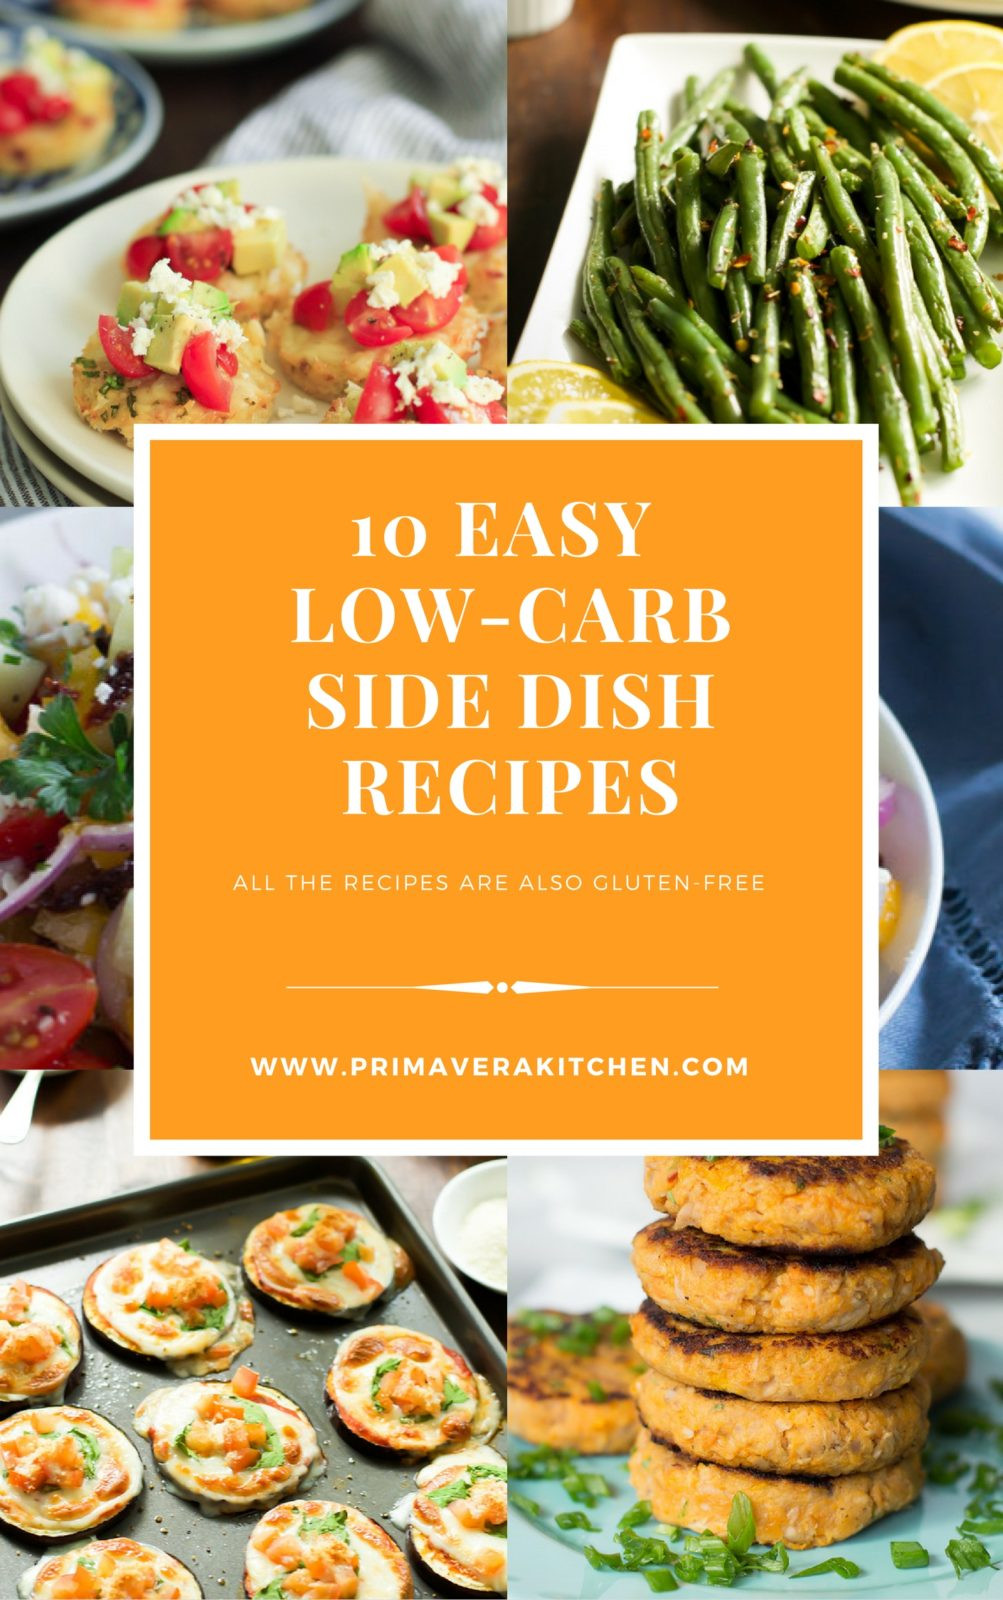 Low Carb Thanksgiving Side Dishes  10 Easy Low Carb Side Dish Recipes Primavera Kitchen